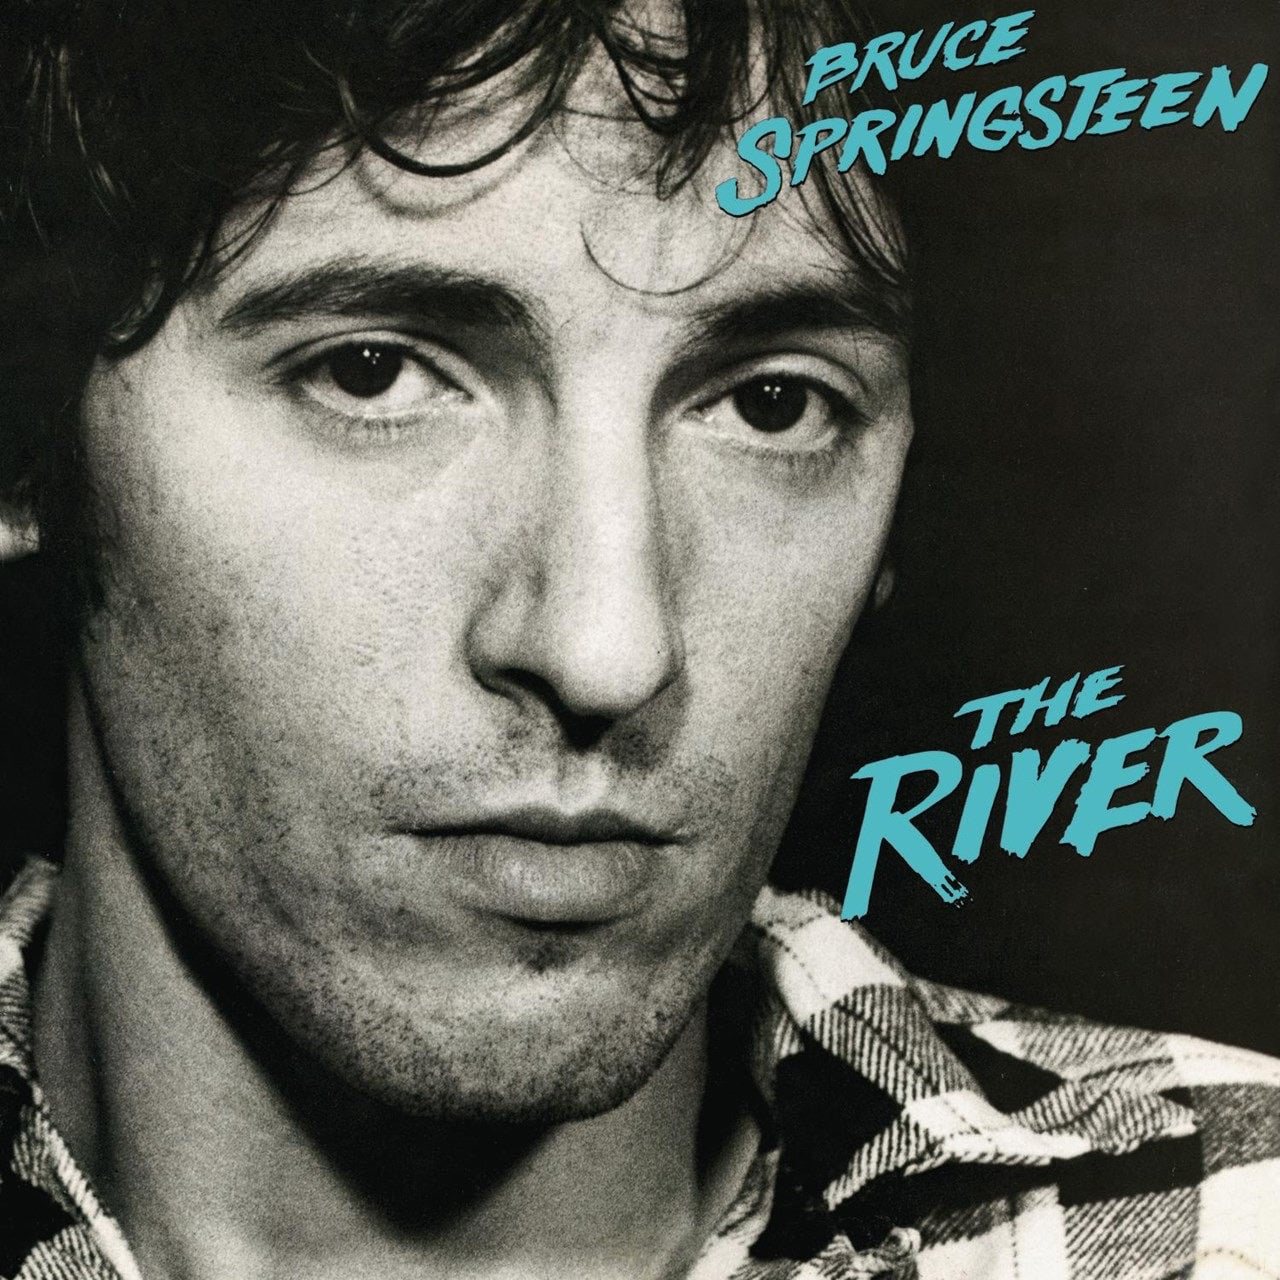 Bruce Springsteen - The River (2LP)